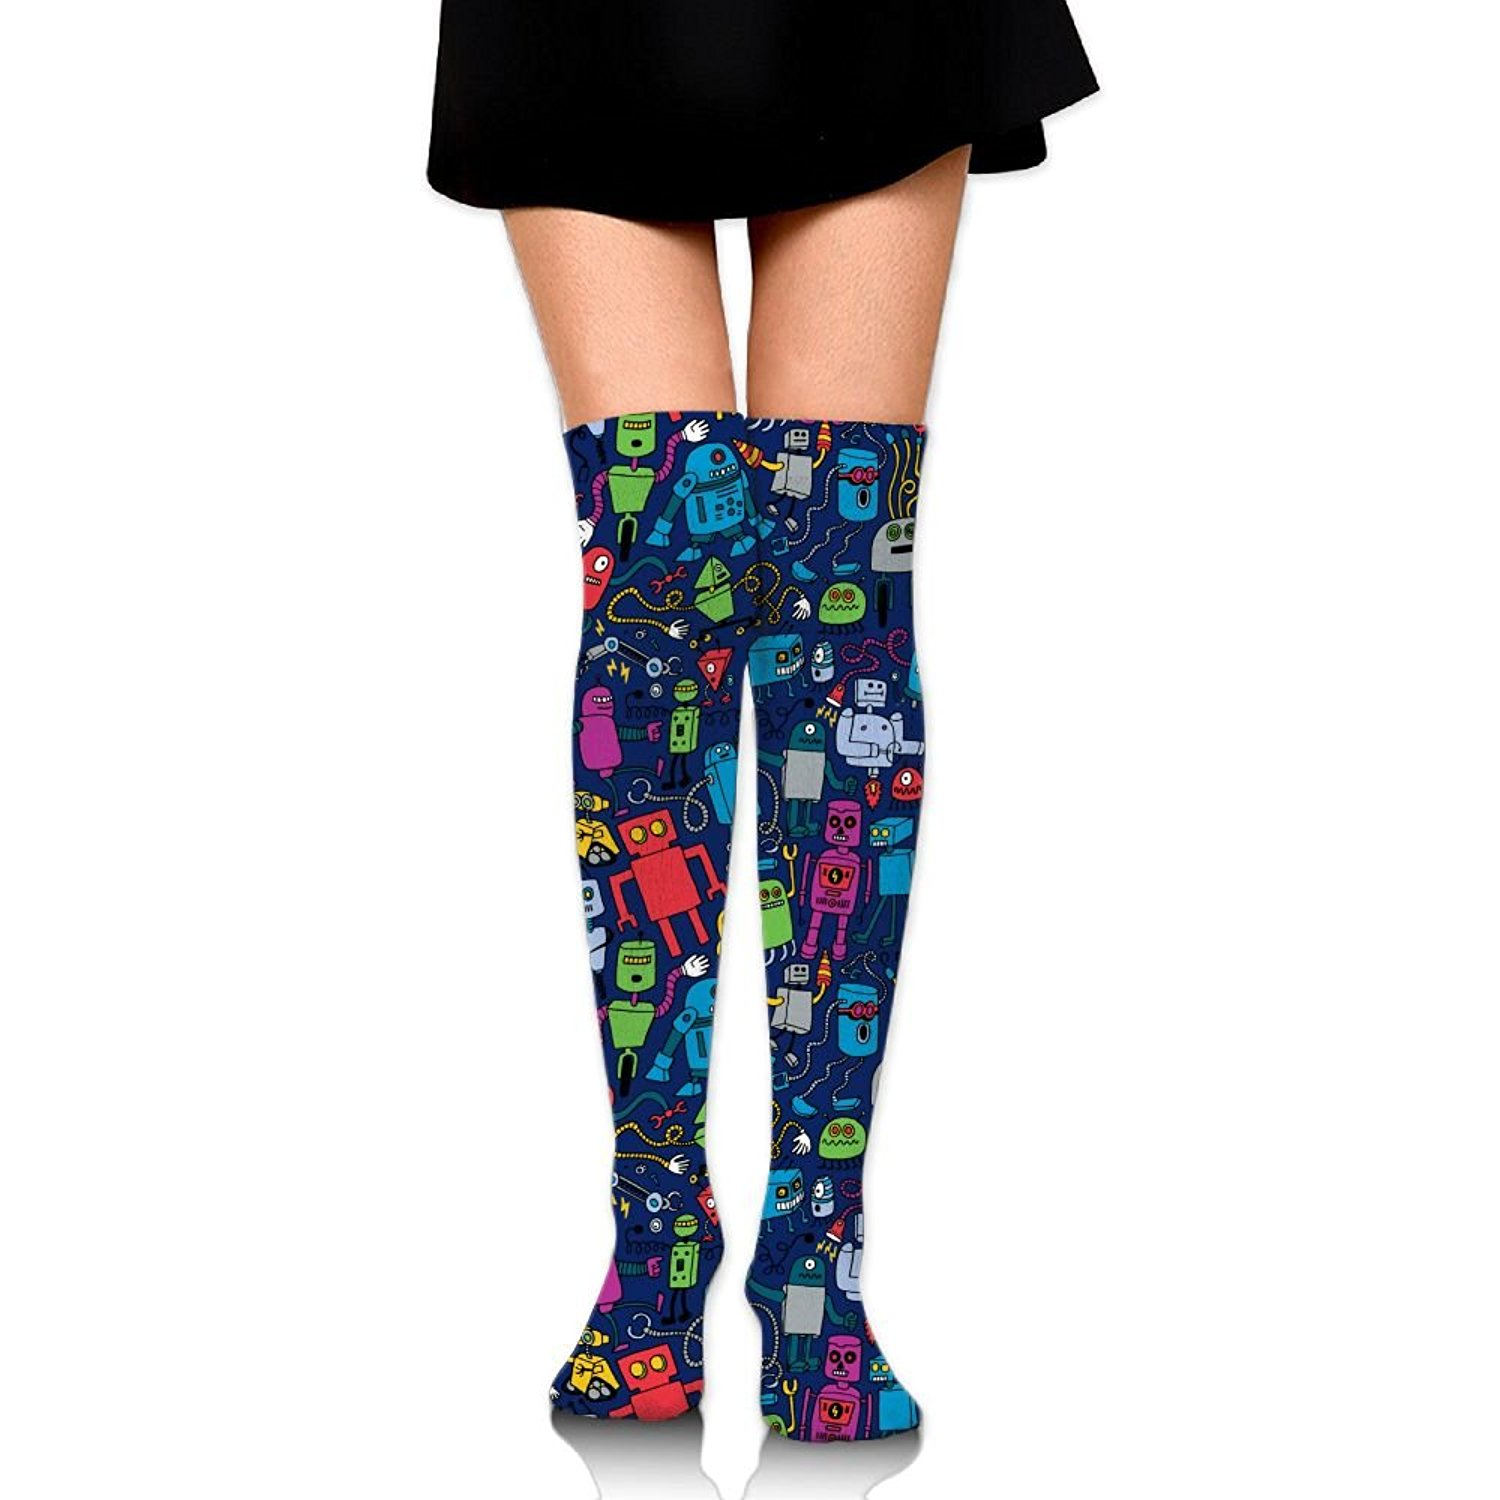 Zaqxsw Color Robot Women Vintage Thigh High Socks Thermal Socks For Teen Girls